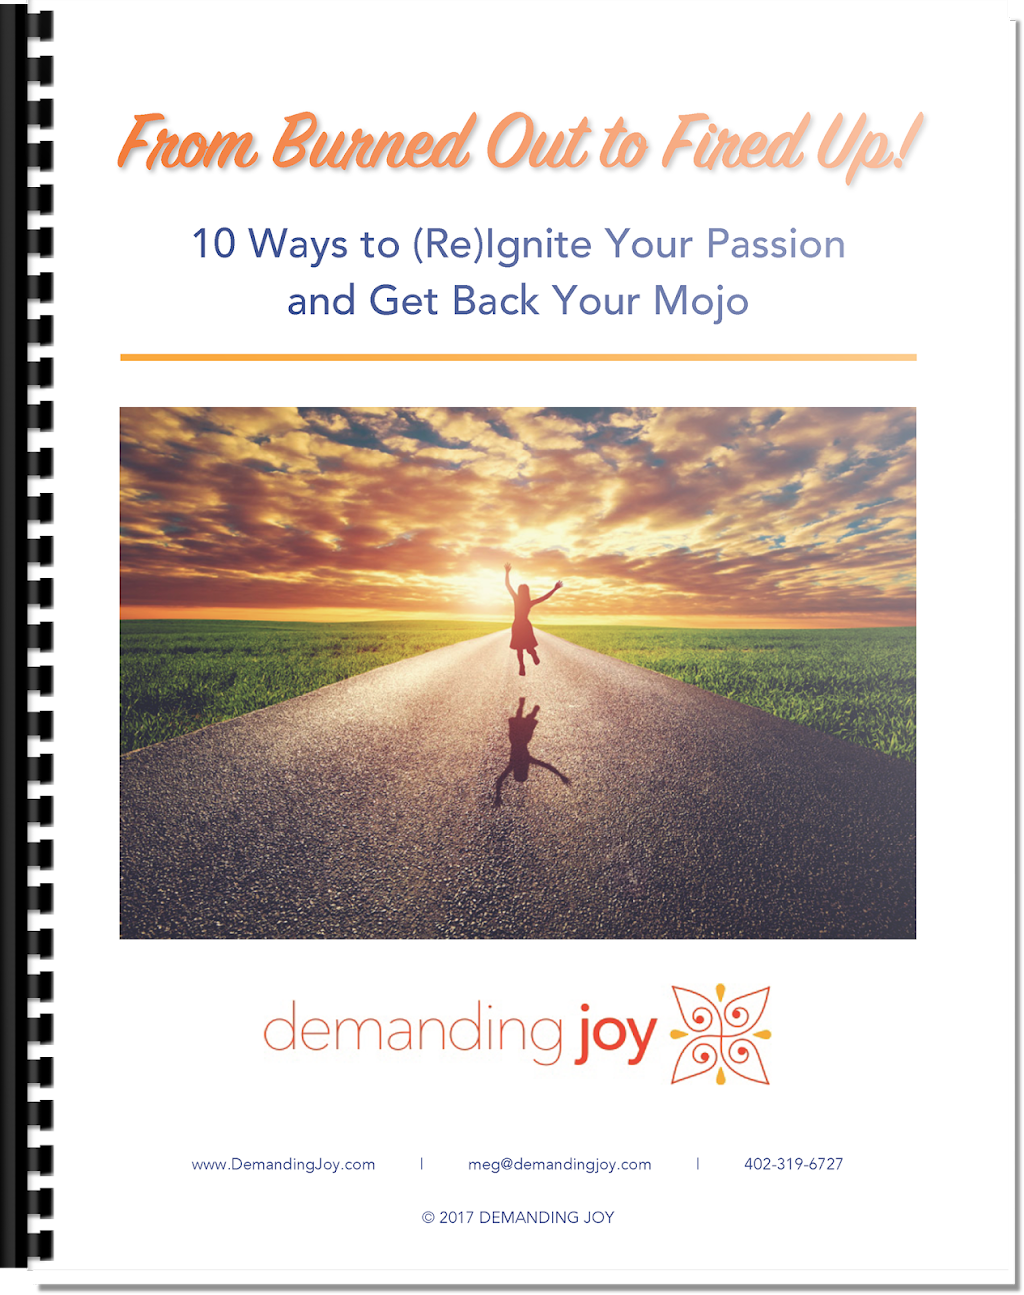 From Burned Out to Fired Up - 10 Ways to Re Ignite Your Passion and Get Back Your Mojo (book cover)